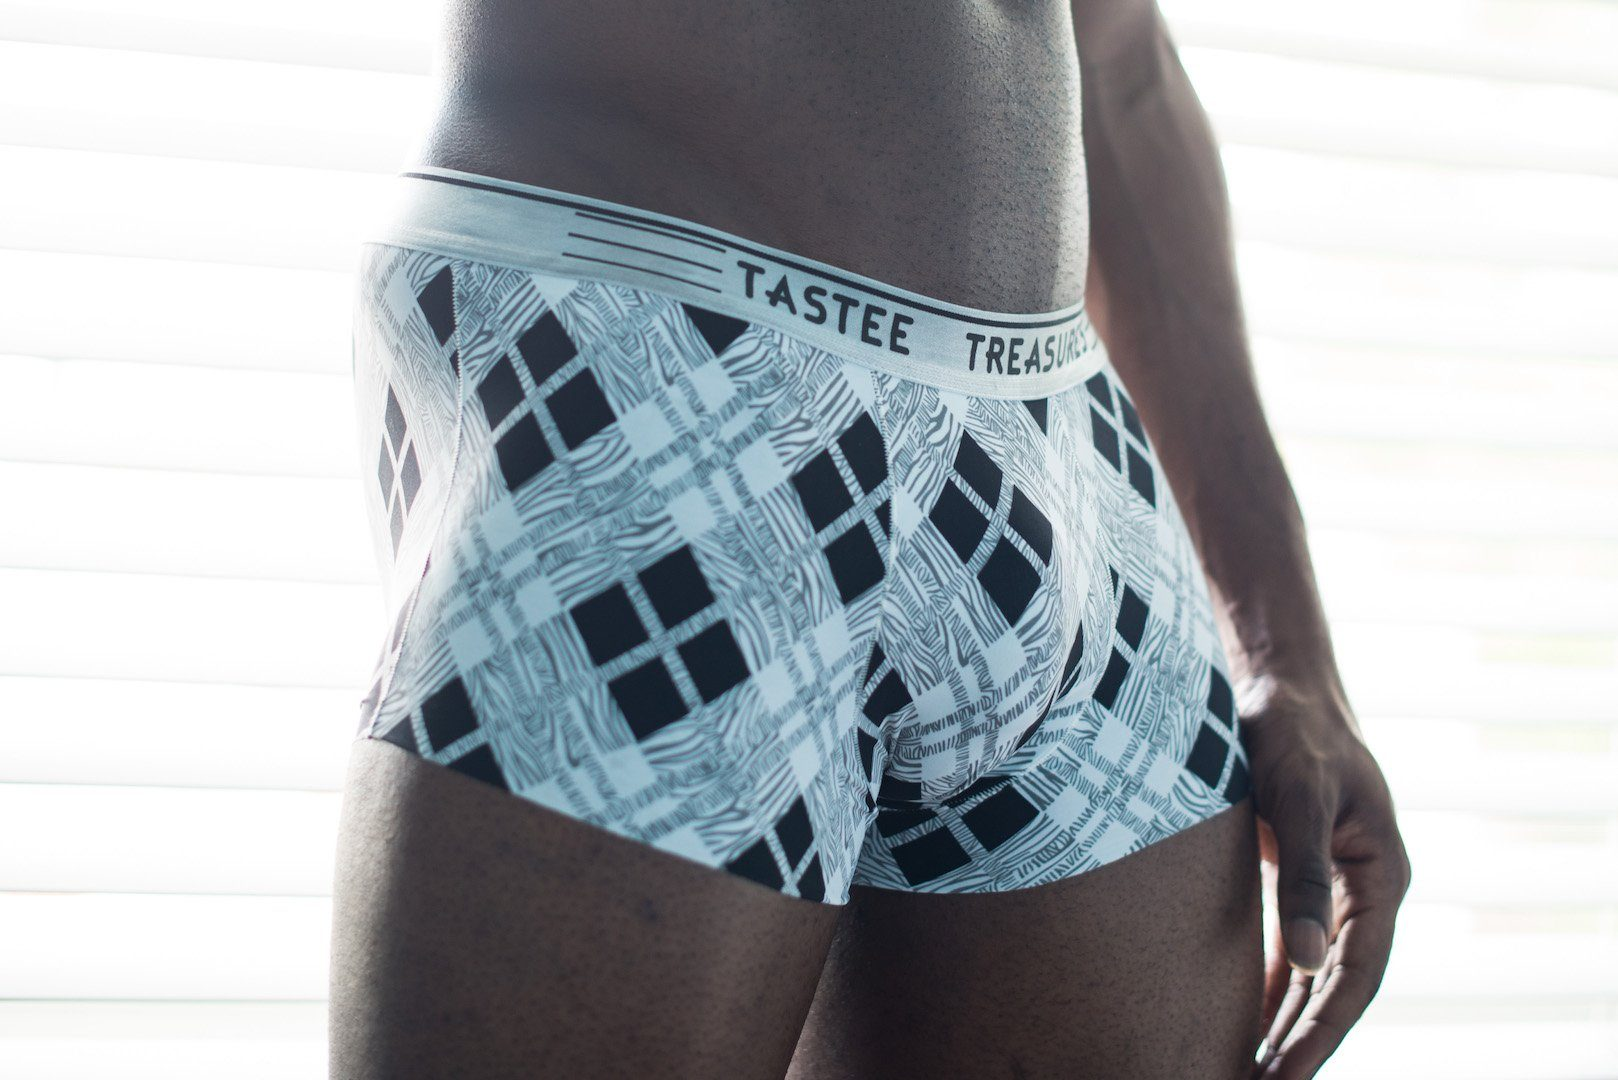 B&W Plaid Boxer Briefs  -  Boxer Briefs - TasteeTreasures